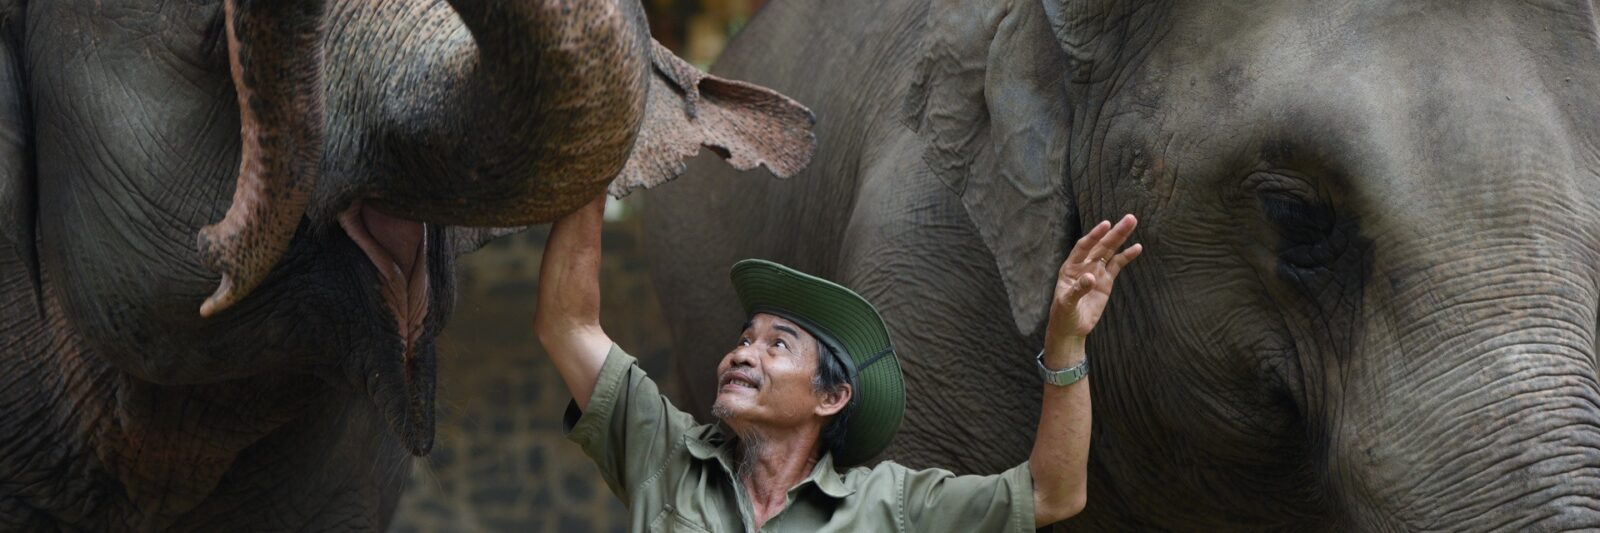 Image of a zookeeper with elephants at the Saigon Zoo and Botanical Garden in HCMC, Vietnam